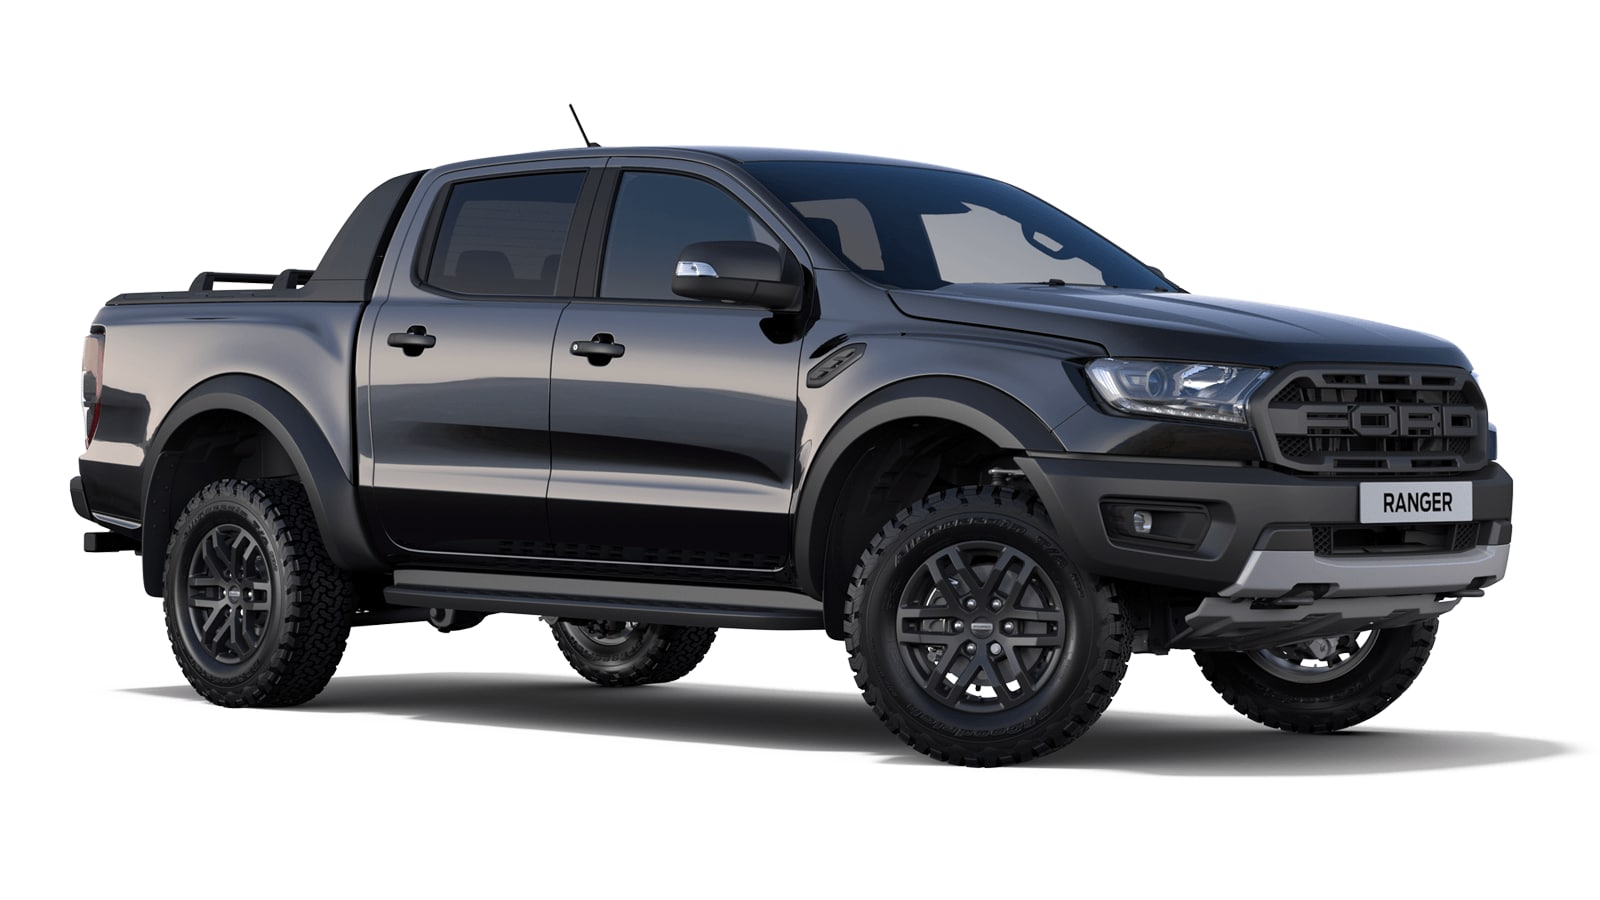 https://www.dealerinternet.co.uk/images/RANGER/2019.5/Double%20Cab/Raptor/SHADOW-BLACK.png